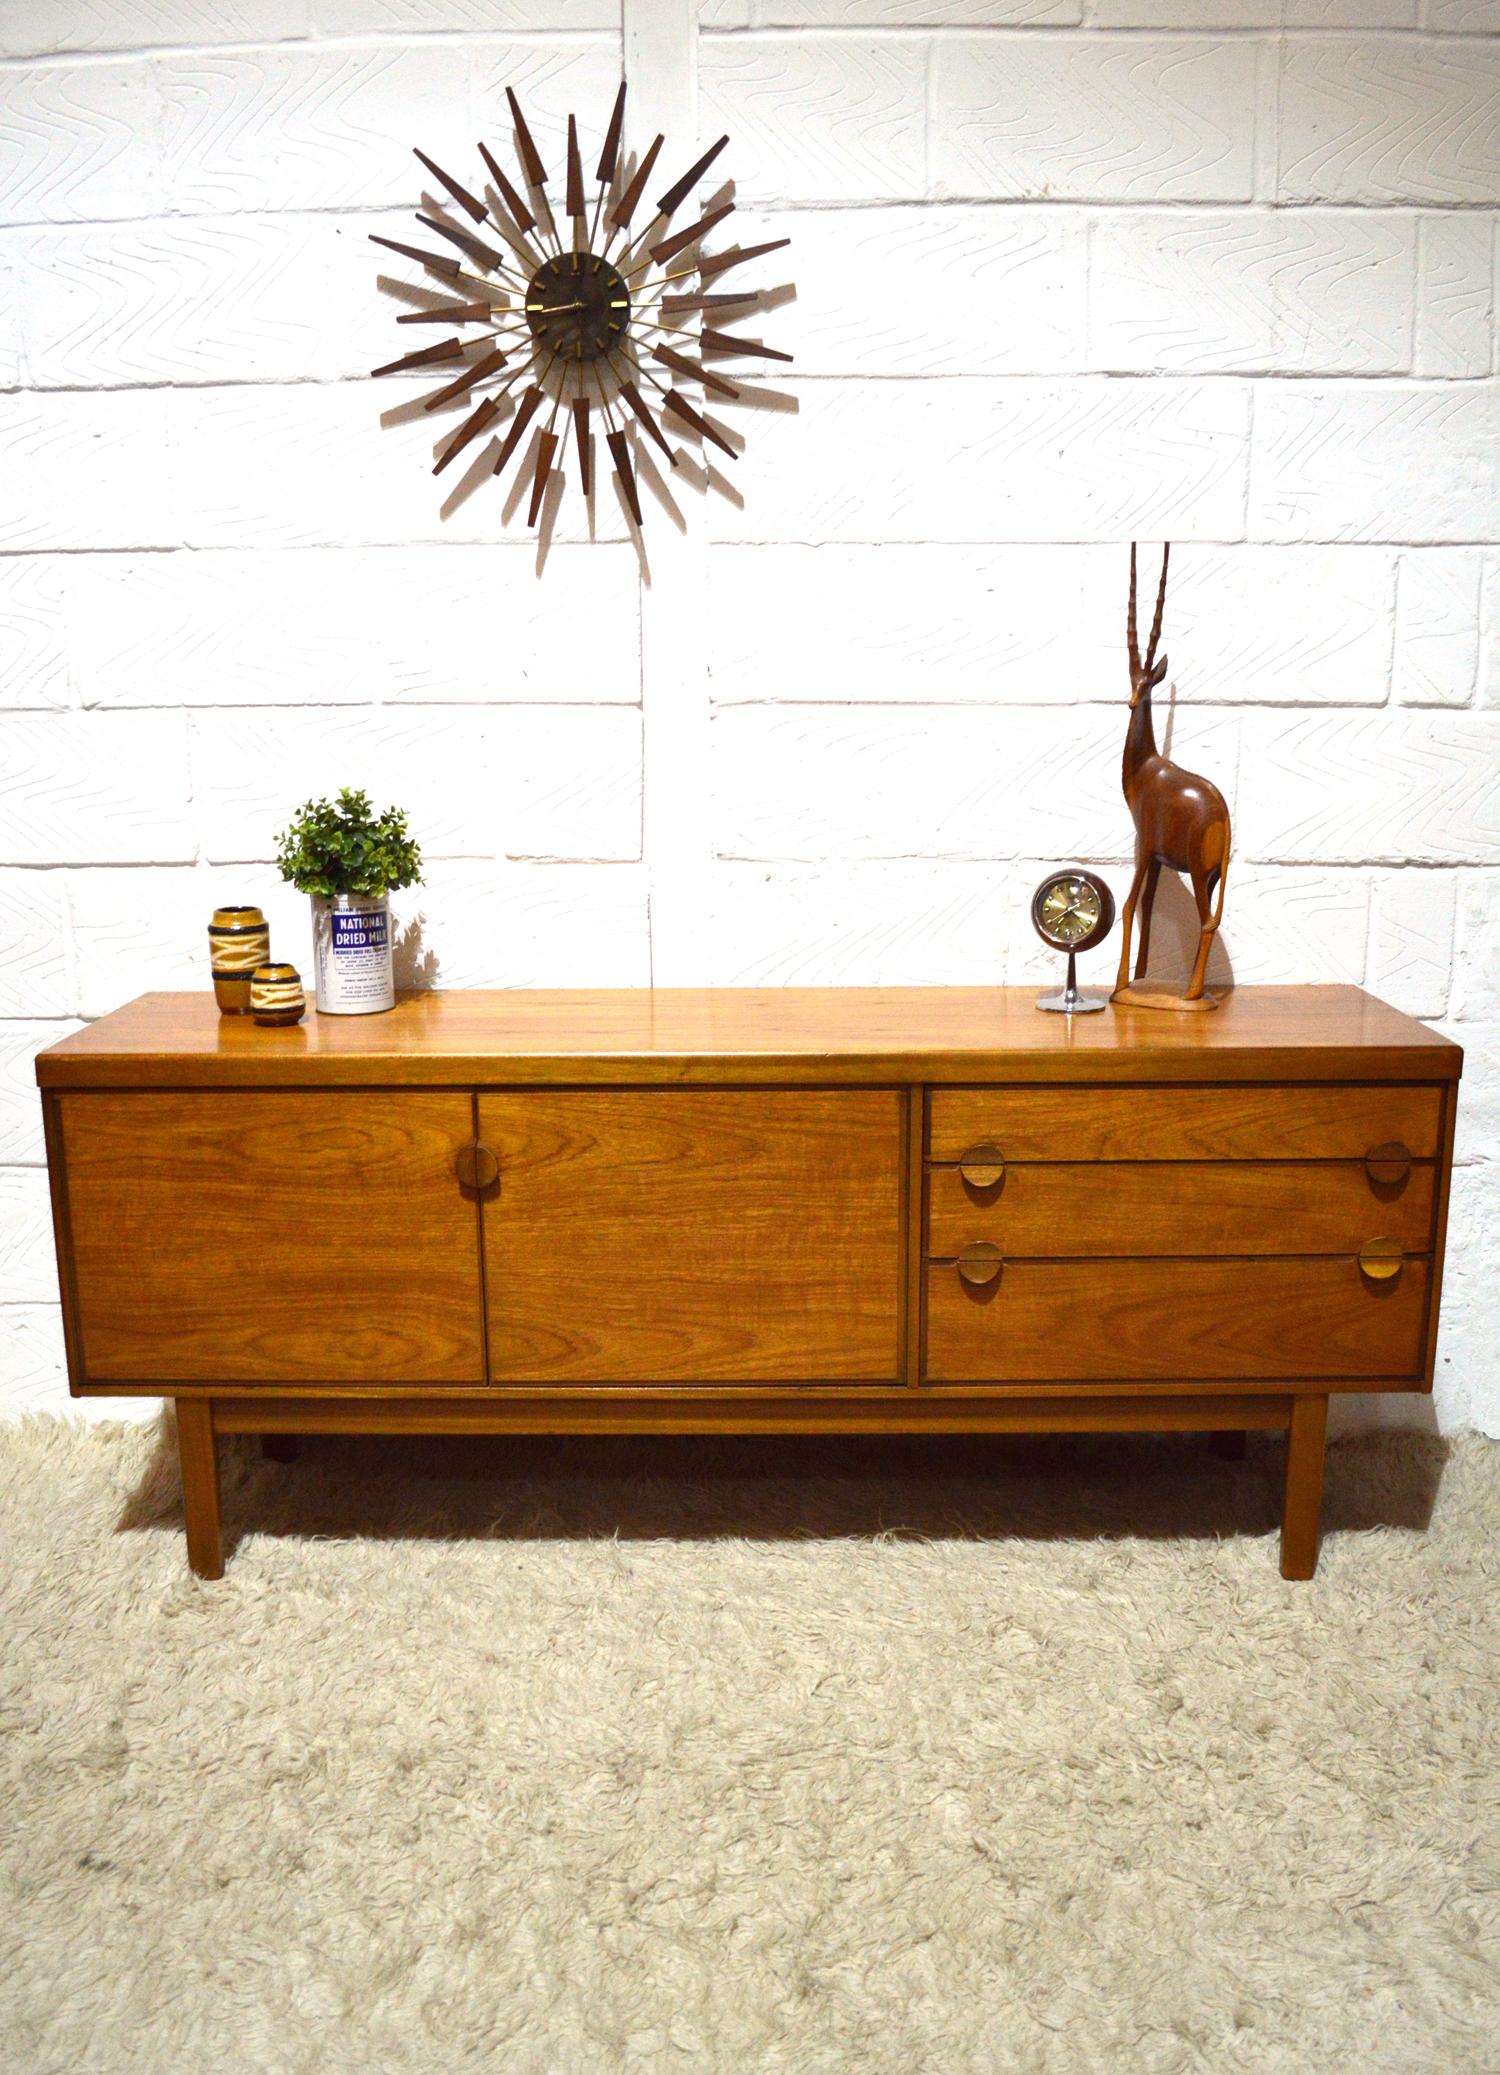 Vintage Nathan Sideboard 60s 70s Stylish Unusual Funky Original Vintage Mid Century Nathan